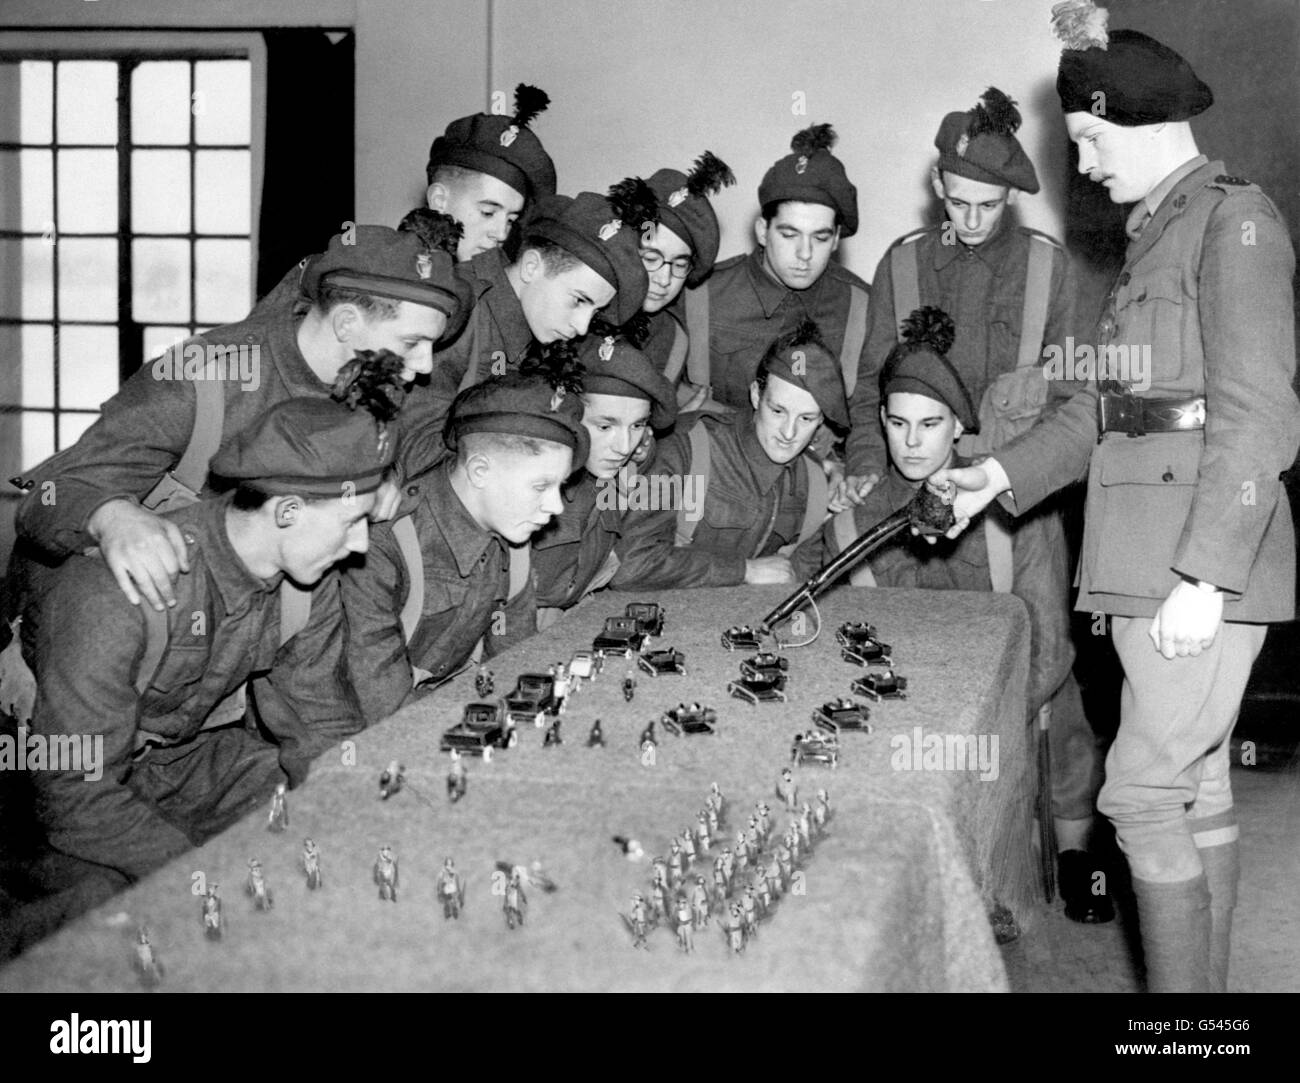 World War Two - British Empire - The Home Front - British Army - Training - 1941 - Stock Image